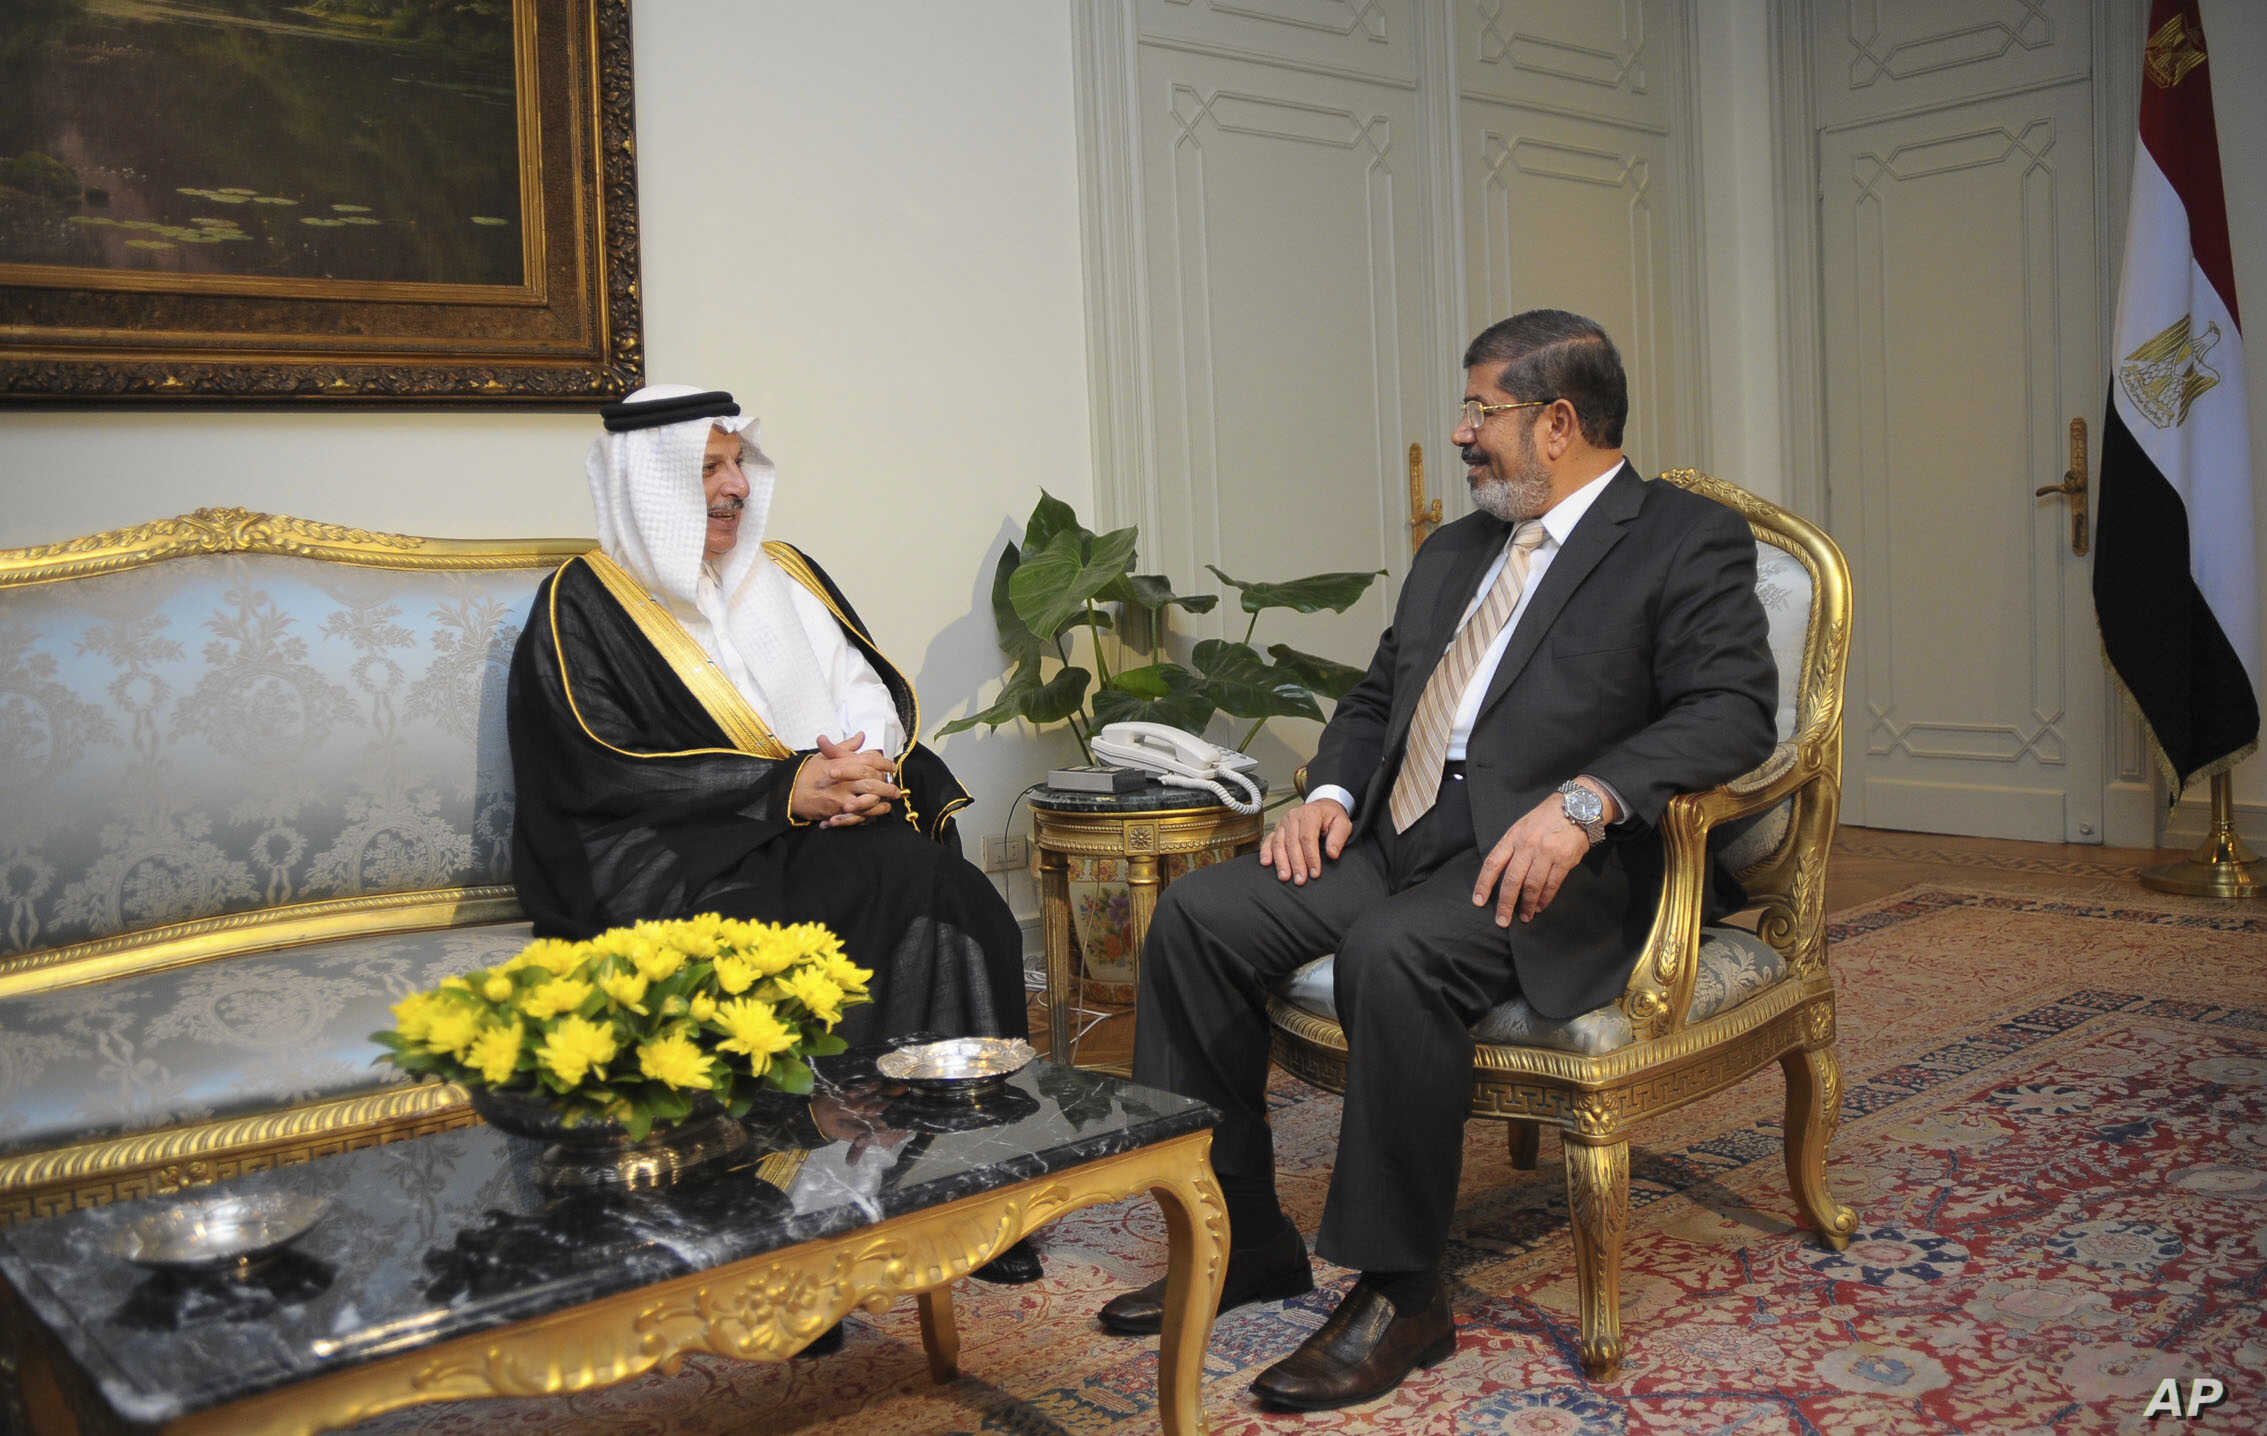 In this photo released by the Egyptian Presidency, Saudi Arabia's ambassador to Egypt Ahmed Kattan meets with Egyptian President Mohammed Morsi, in Cairo, July 7, 2012.